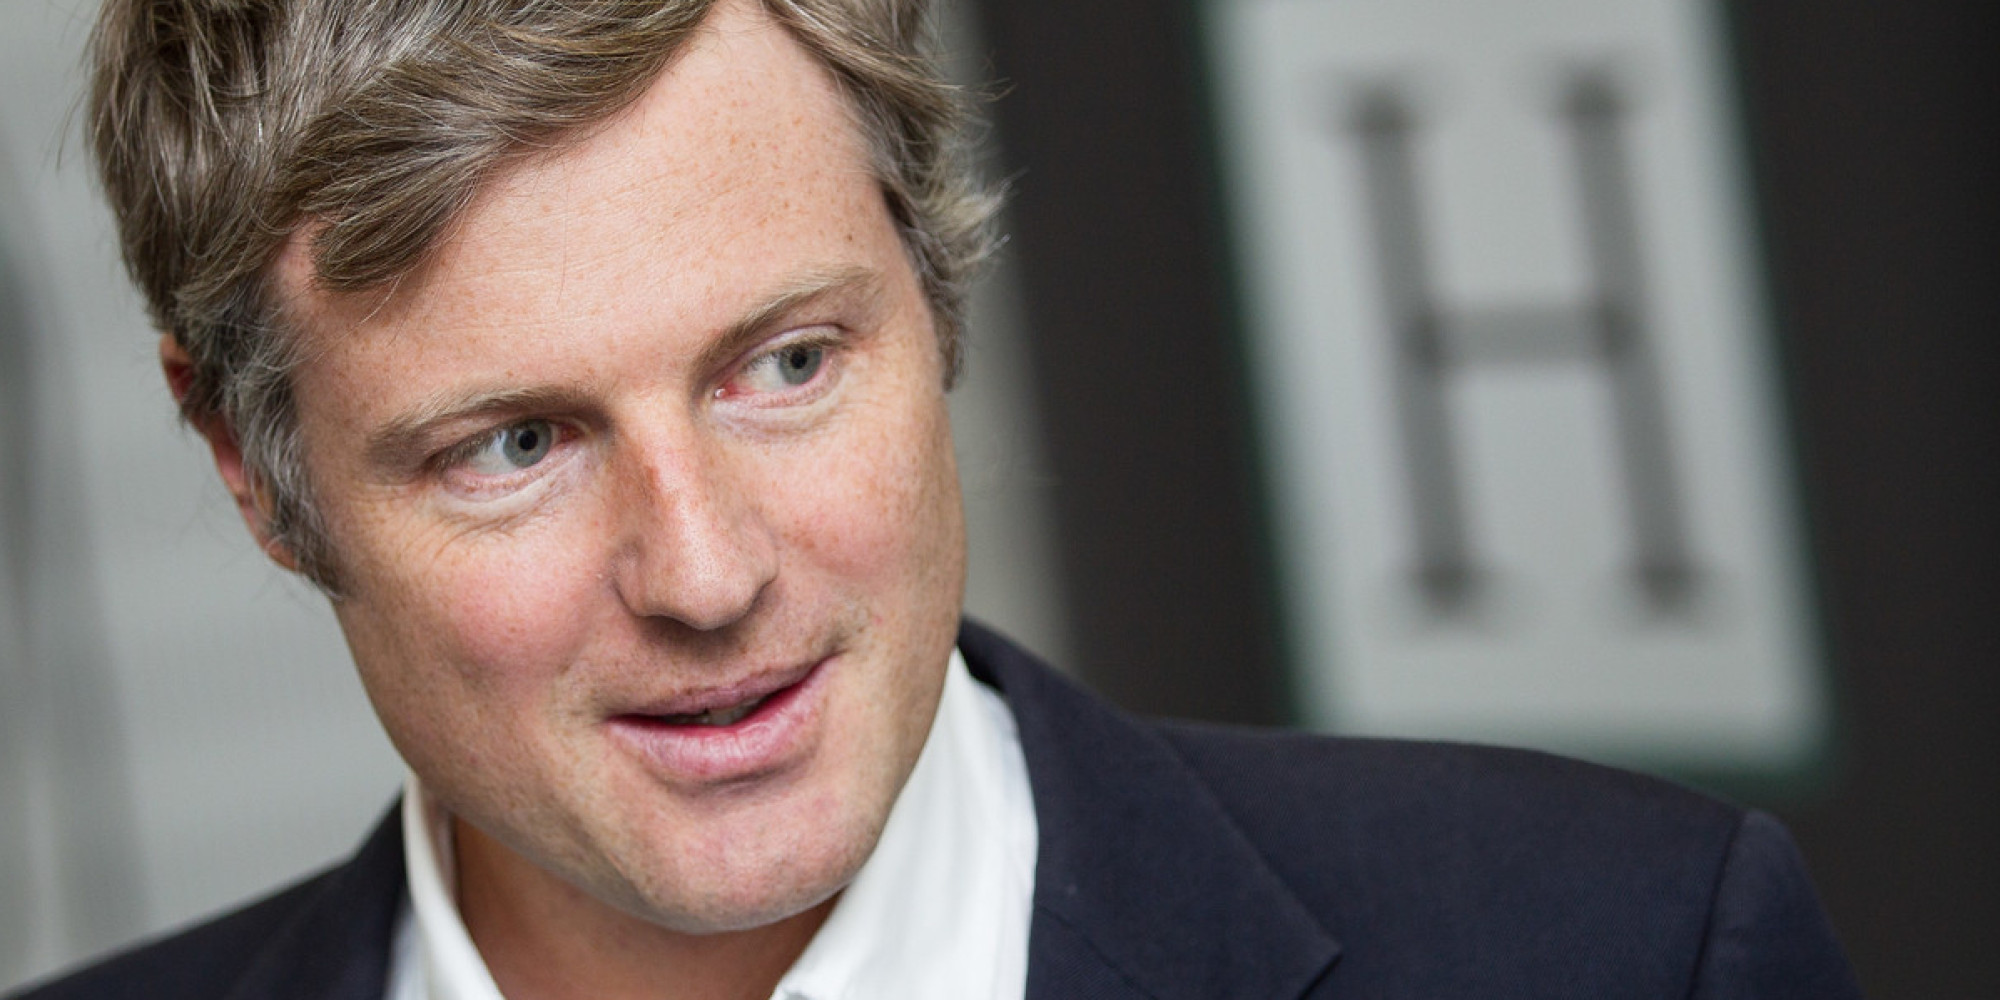 MP Zac Goldsmith sends encouragement and support